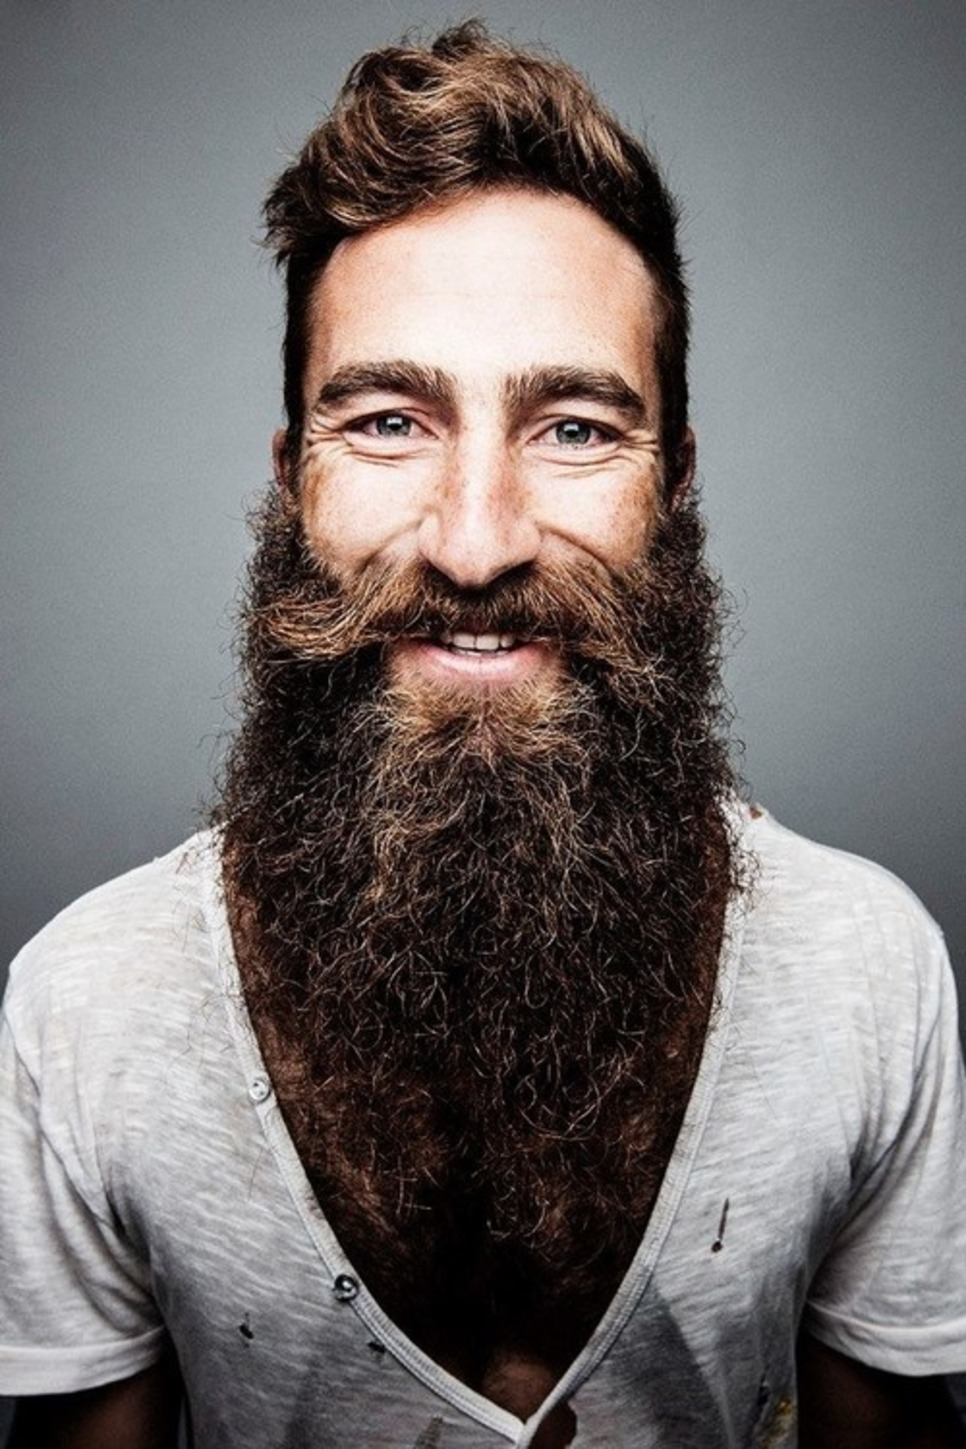 Fear not the hipster beard: it too shall pass